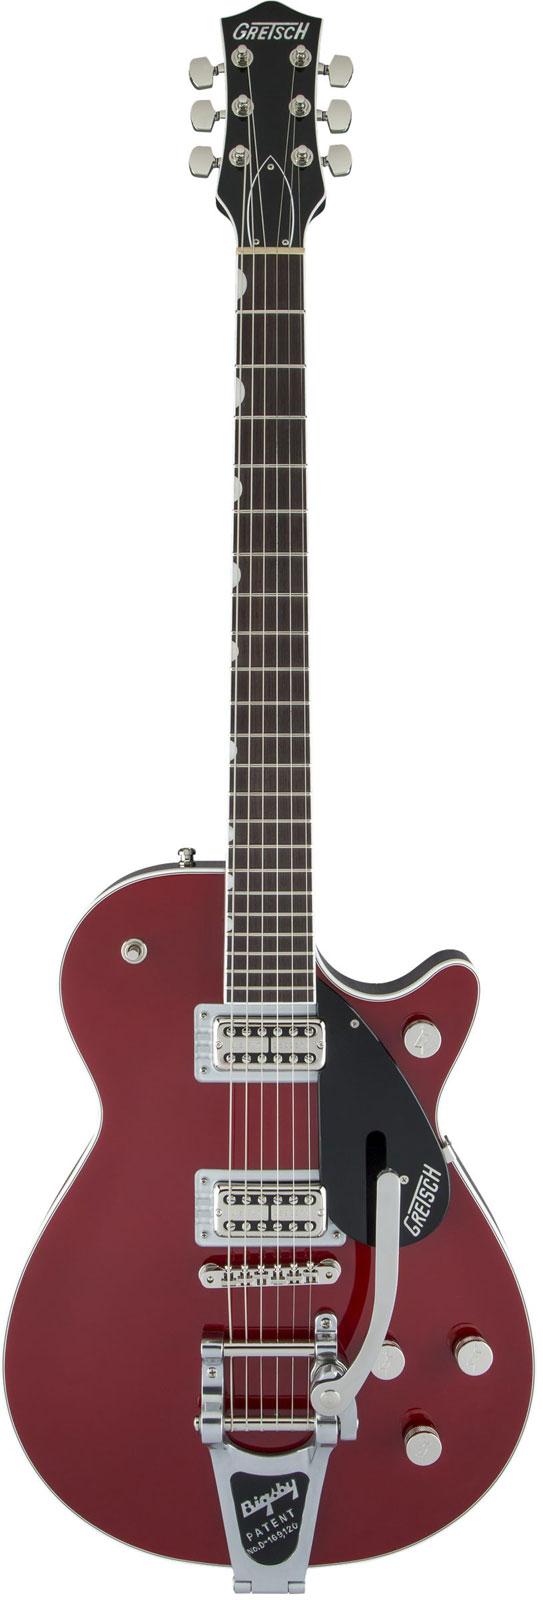 Gretsch Guitars G6131t Players Edition Jet Ft With Bigsby Rw Firebird Red